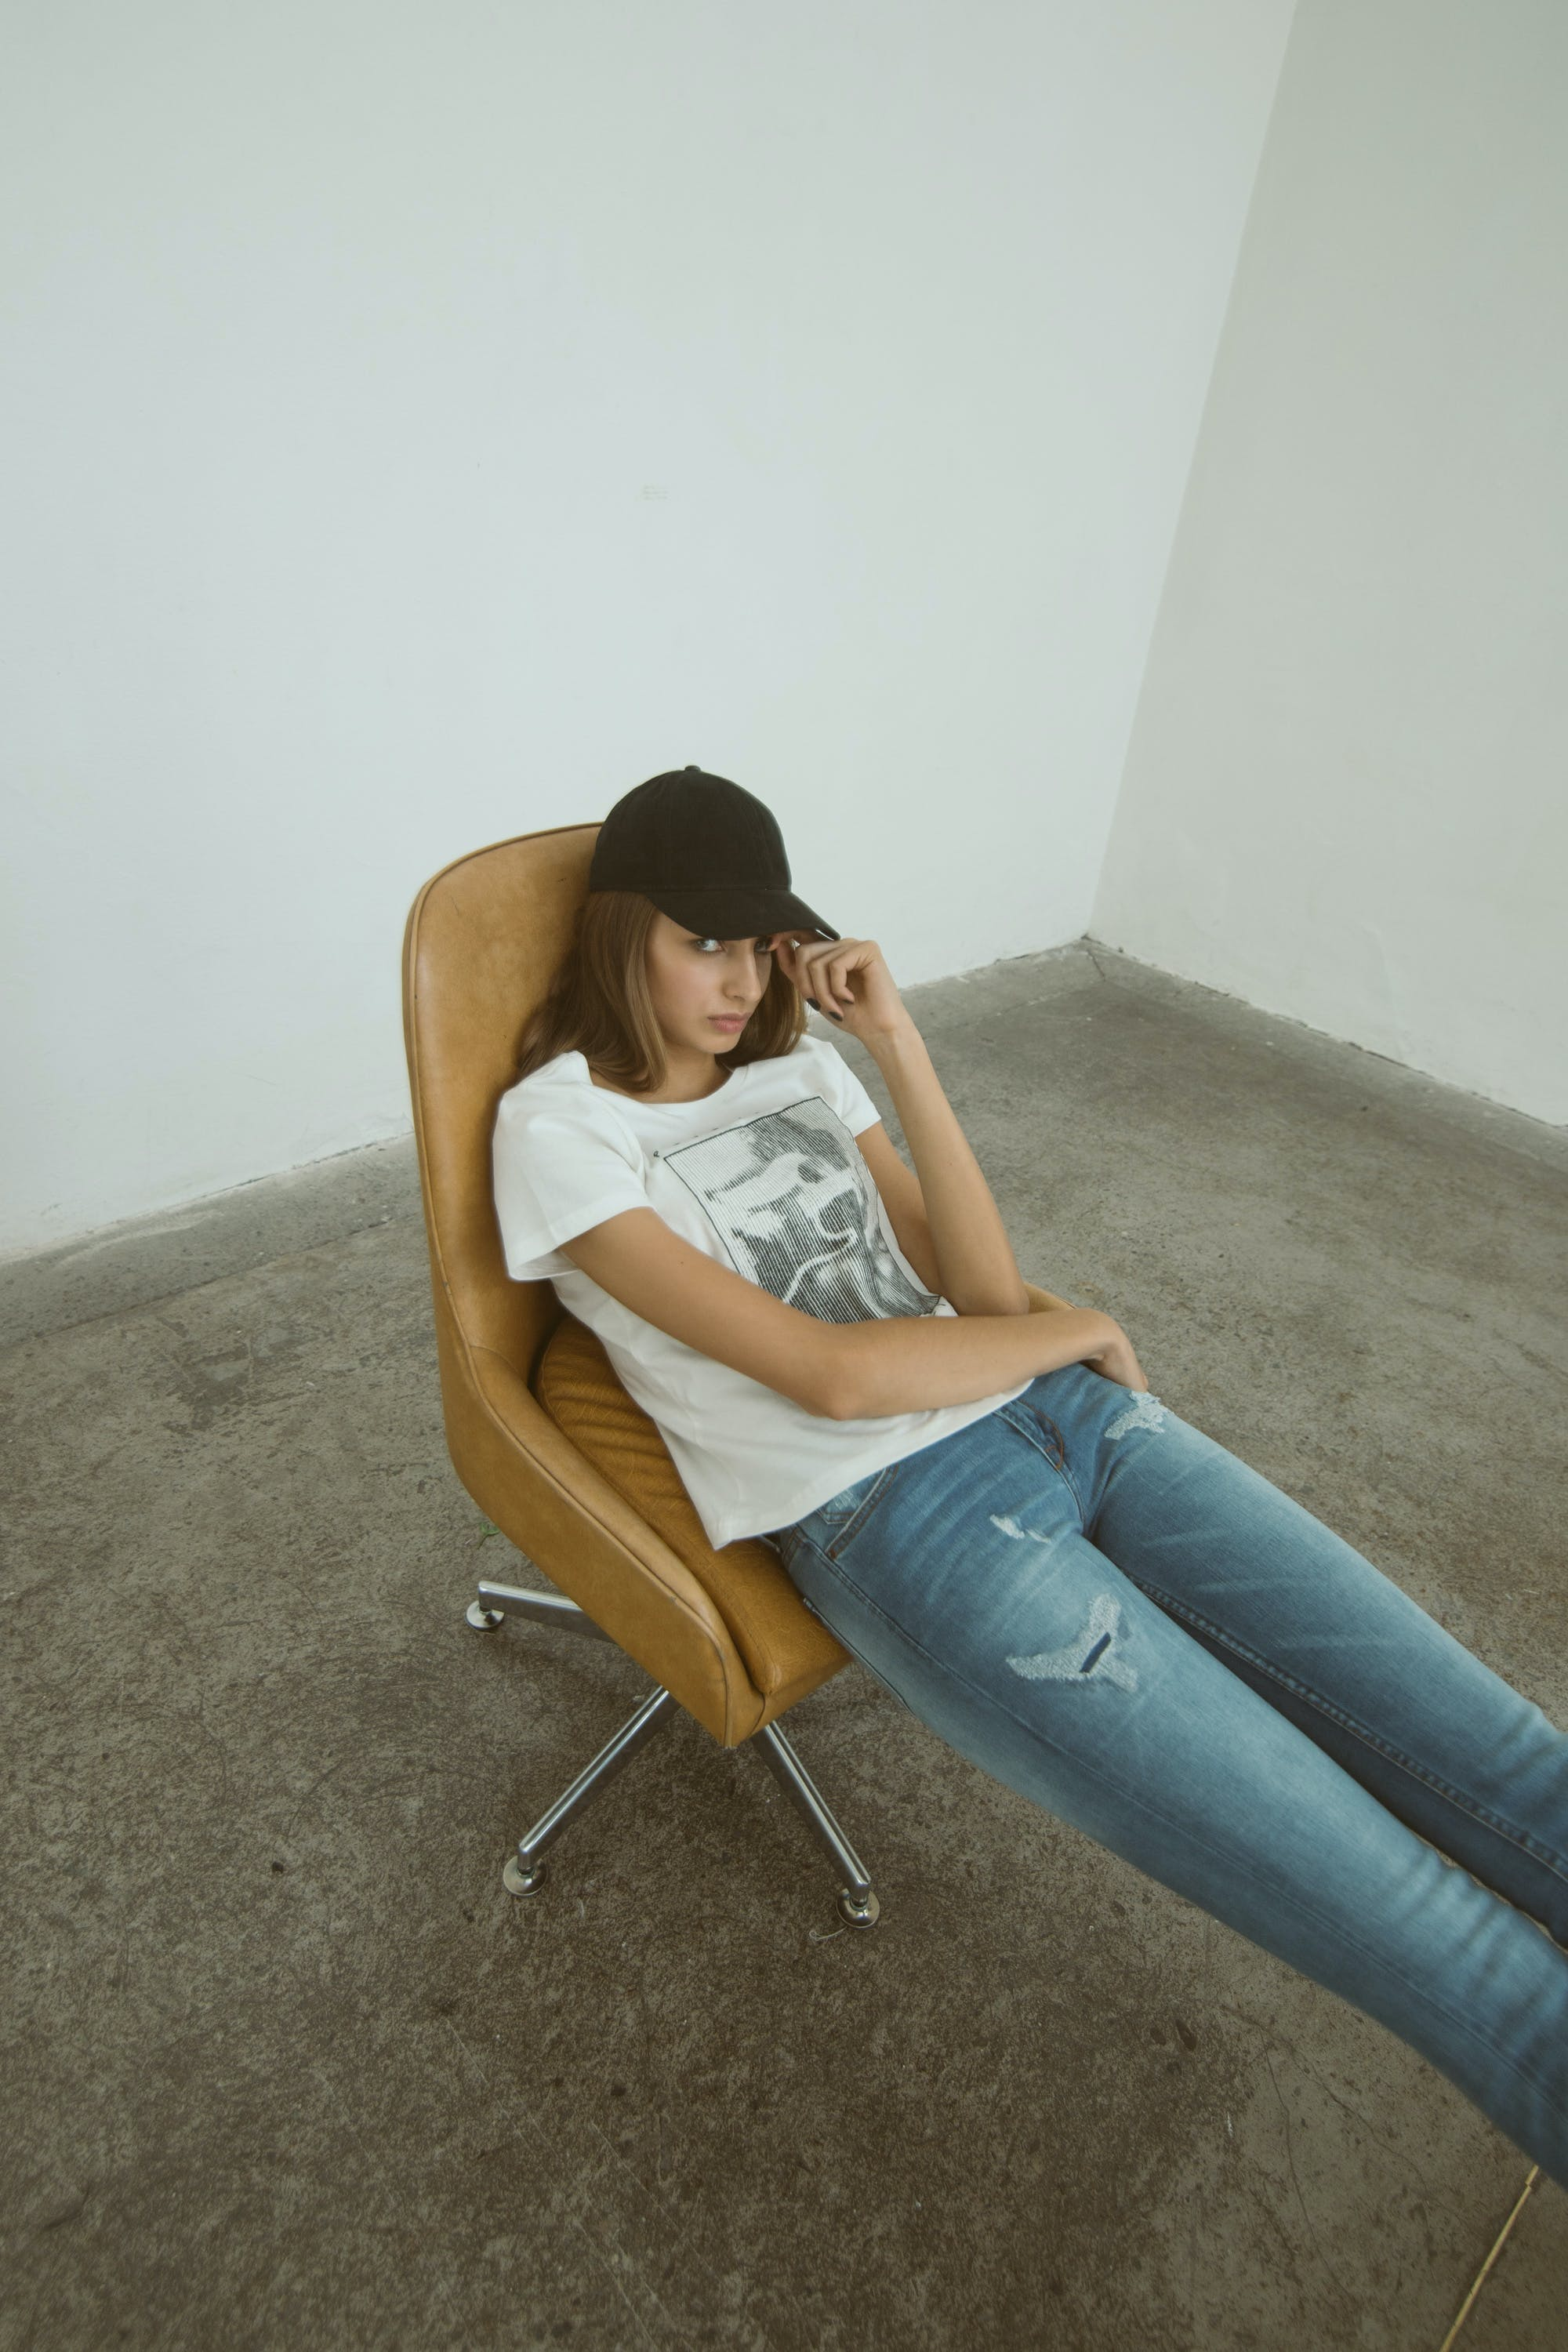 Woman Wearing White Printed Shirt Sitting on Brown Leather Rolling Chair